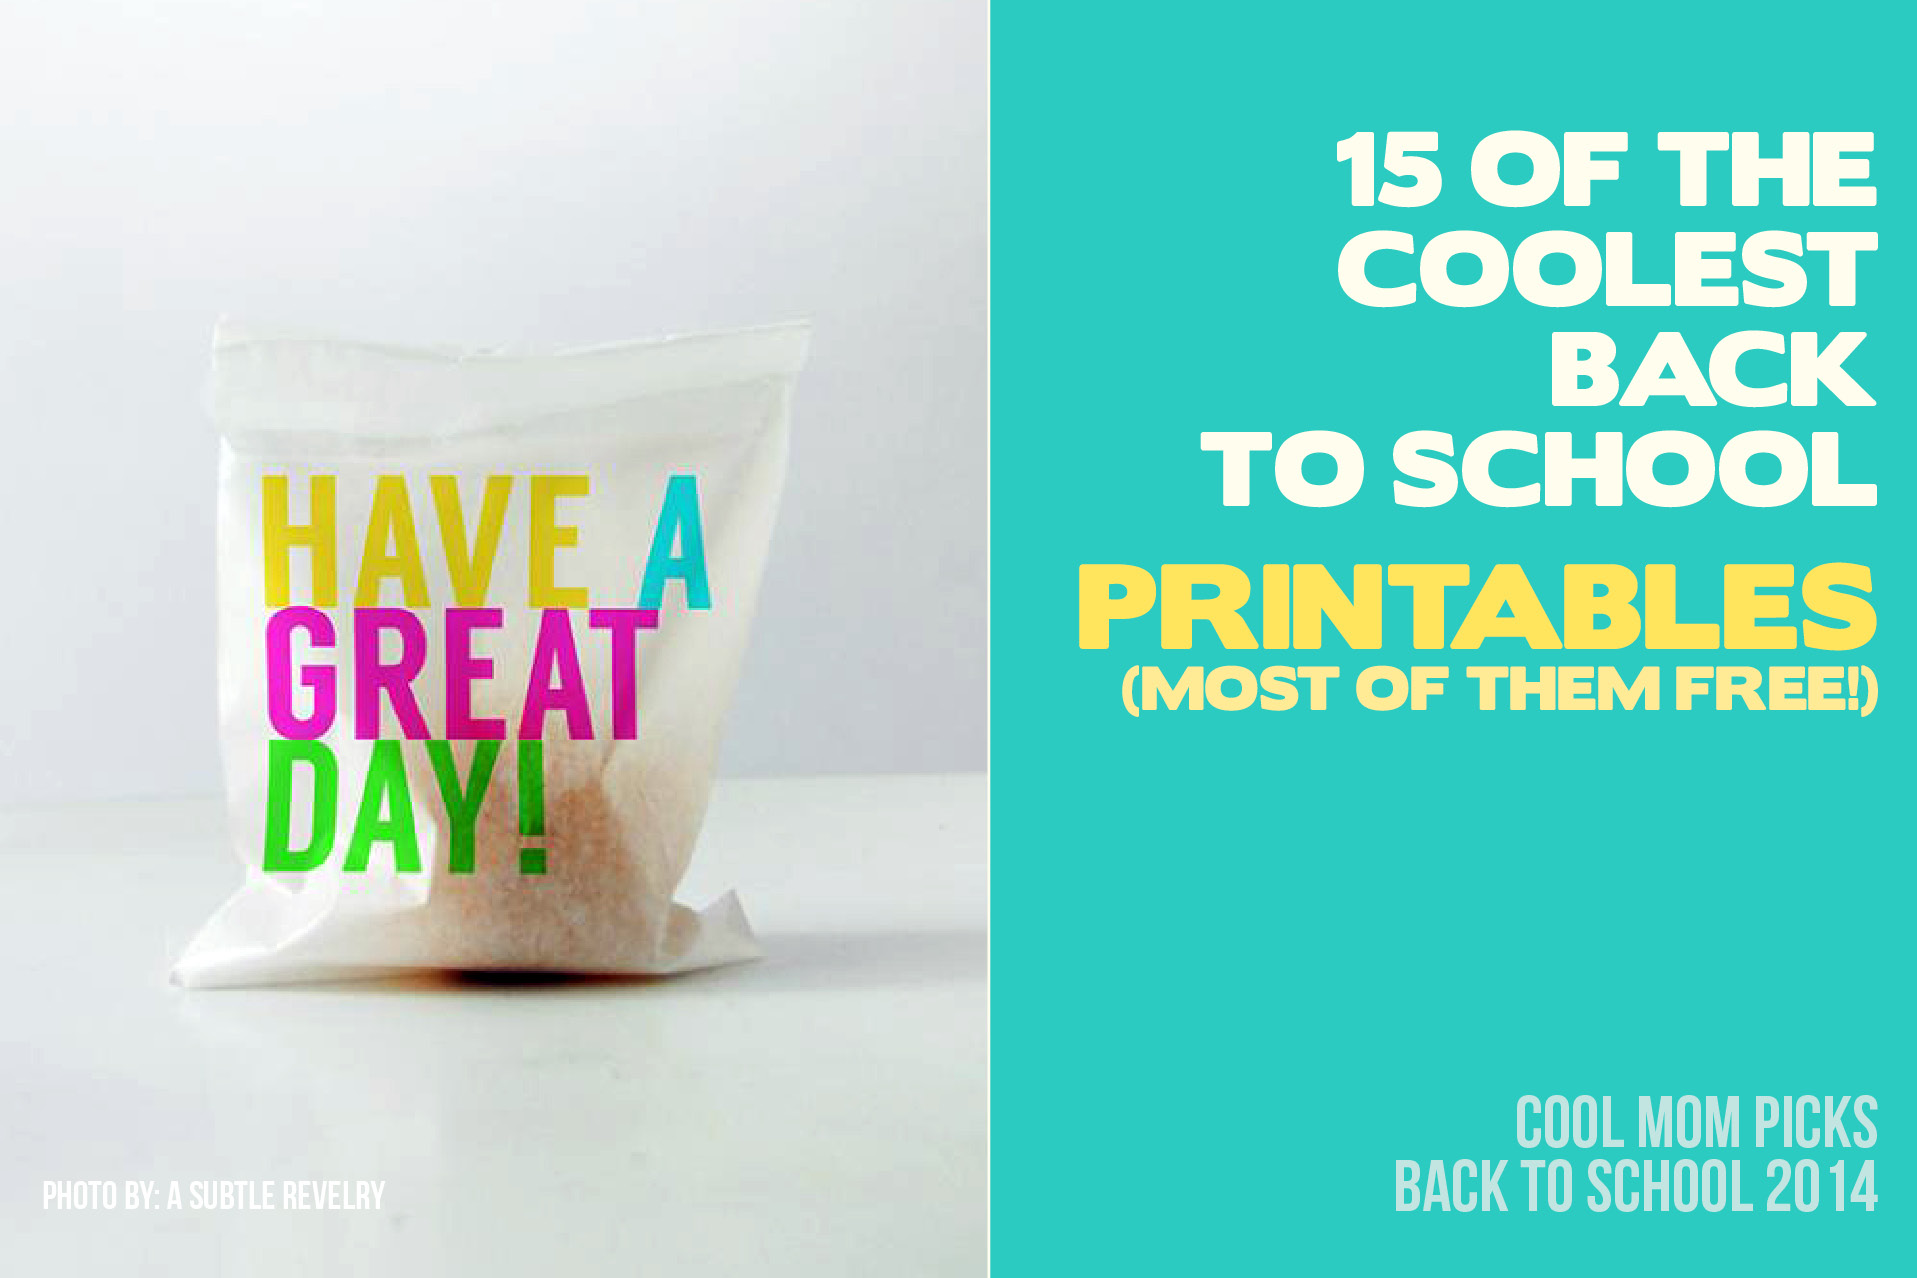 15 of the coolest back to school printables: Back to School Guide 2014